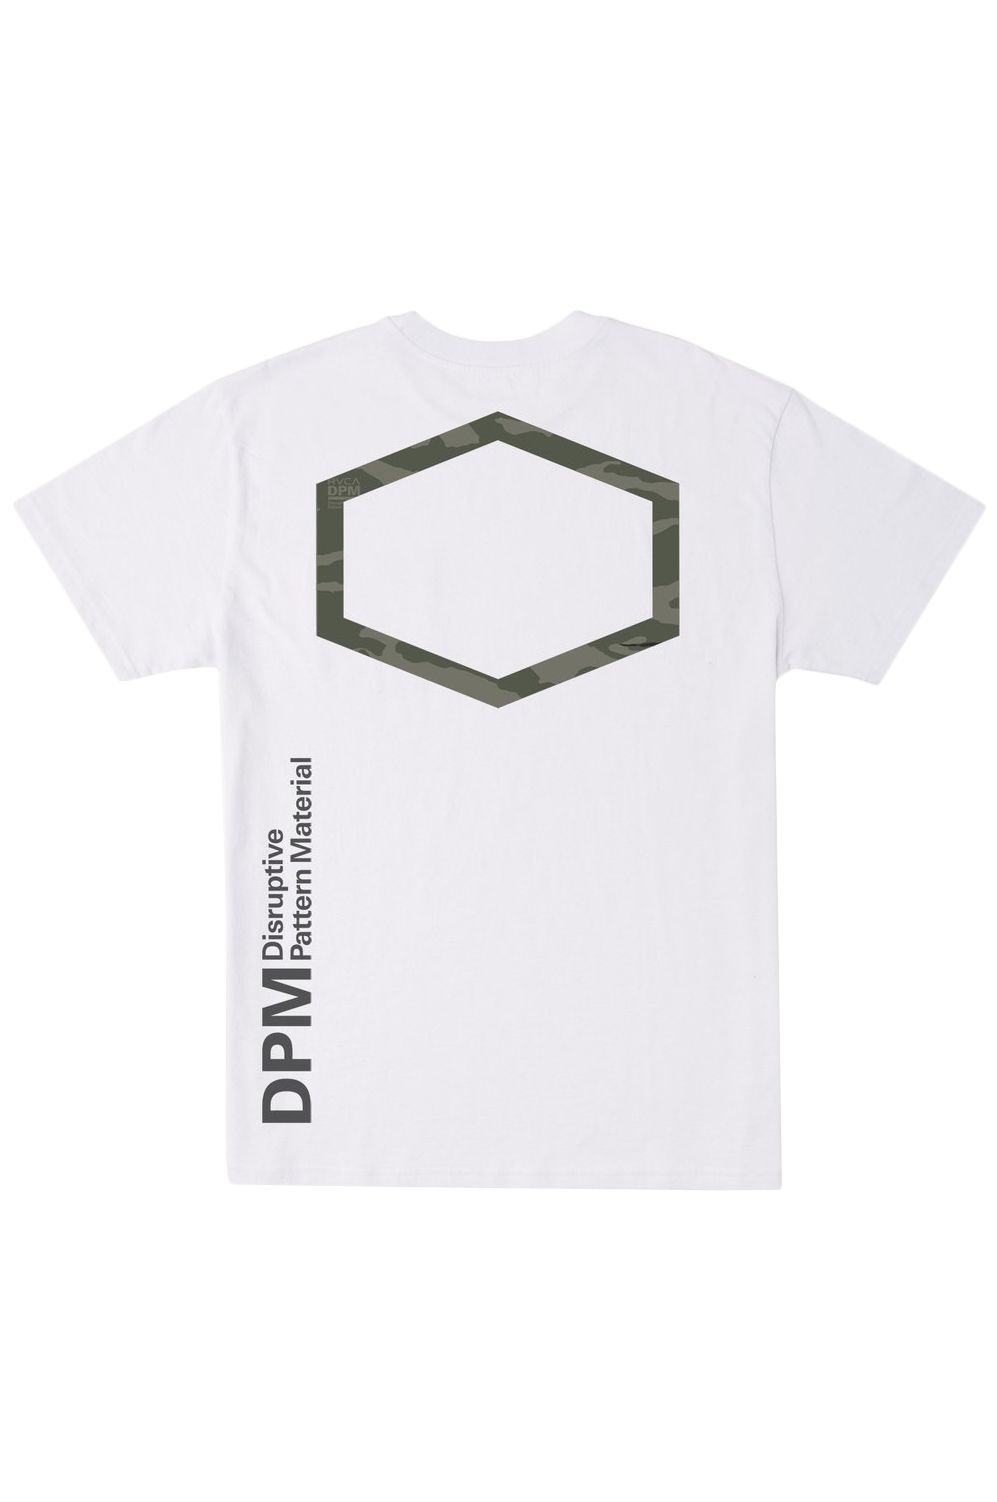 T-Shirt RVCA DPM POCKET TEE DPM White